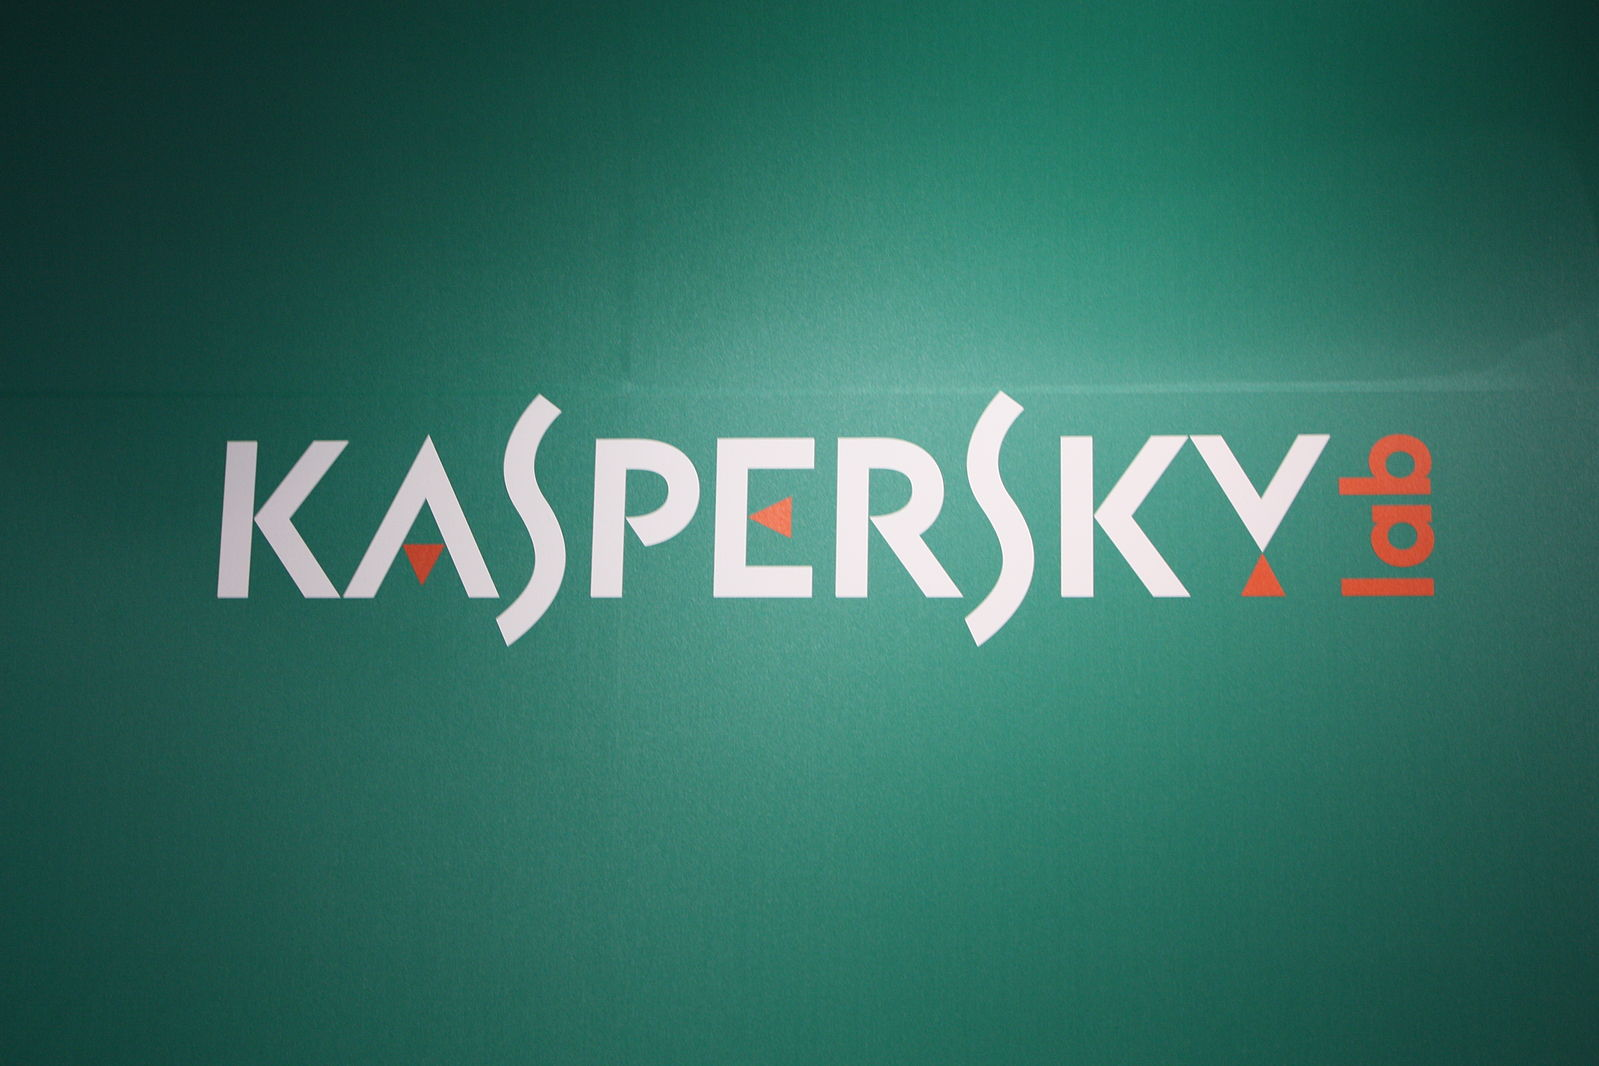 Difference between Kaspersky and Webroot